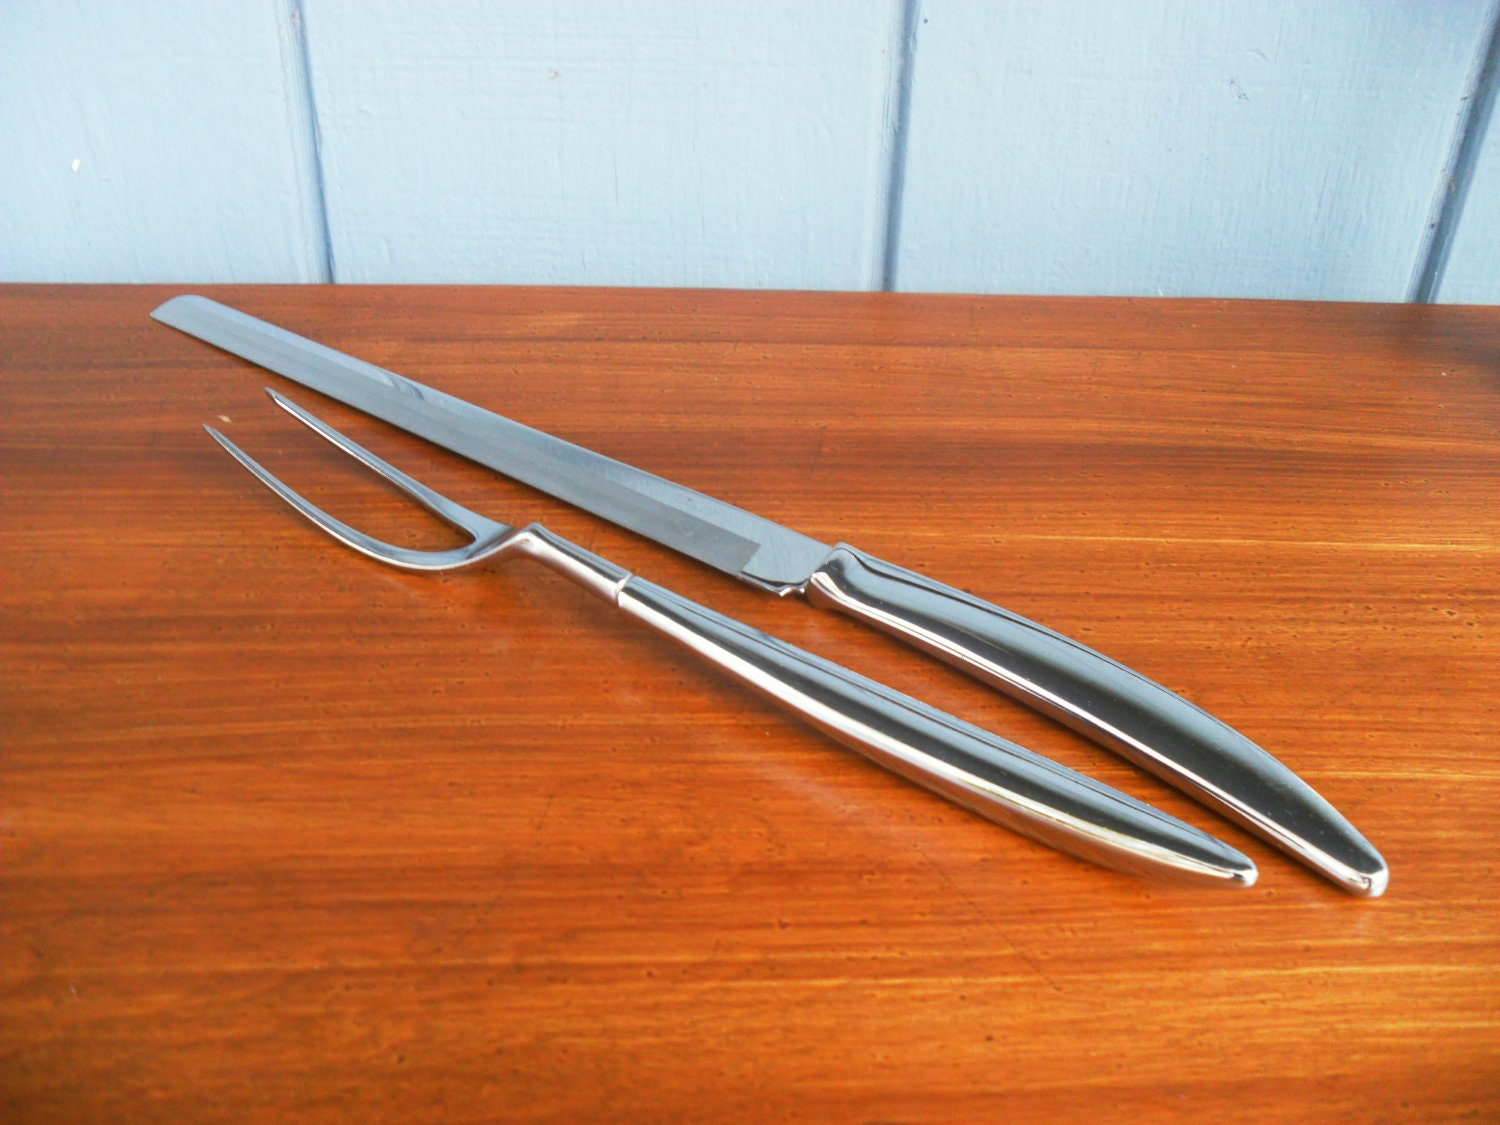 Mid century modern stainless steel carving set by carvel hall